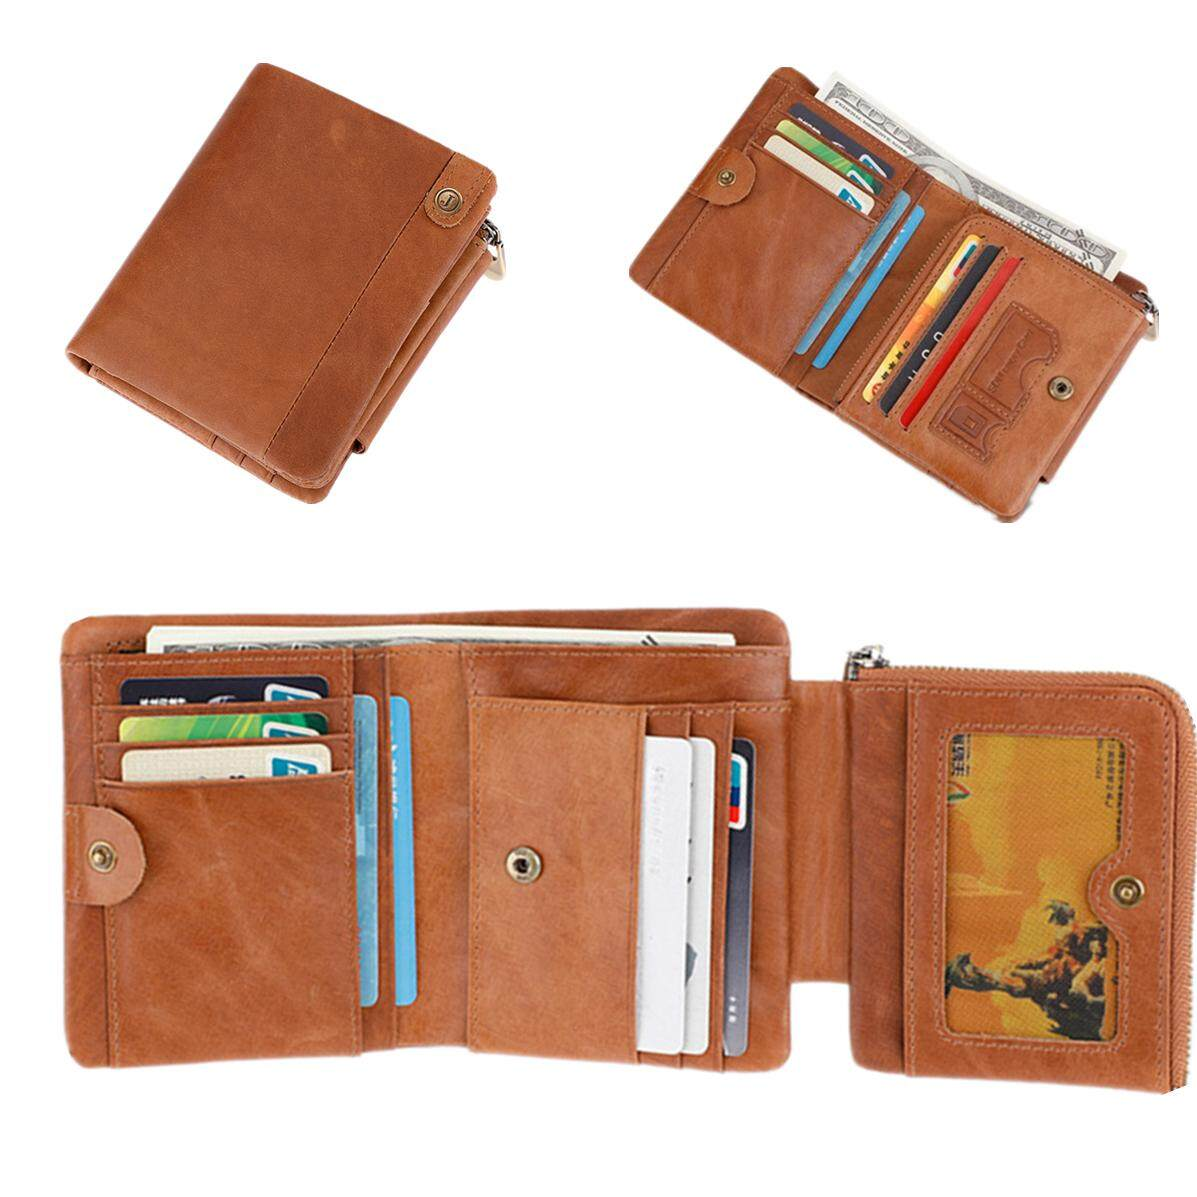 Mens Purse Genuine Leather Purse For Men RFID Credit Card Holder Zipper&Hasp Male Wallet With Coin Pocket